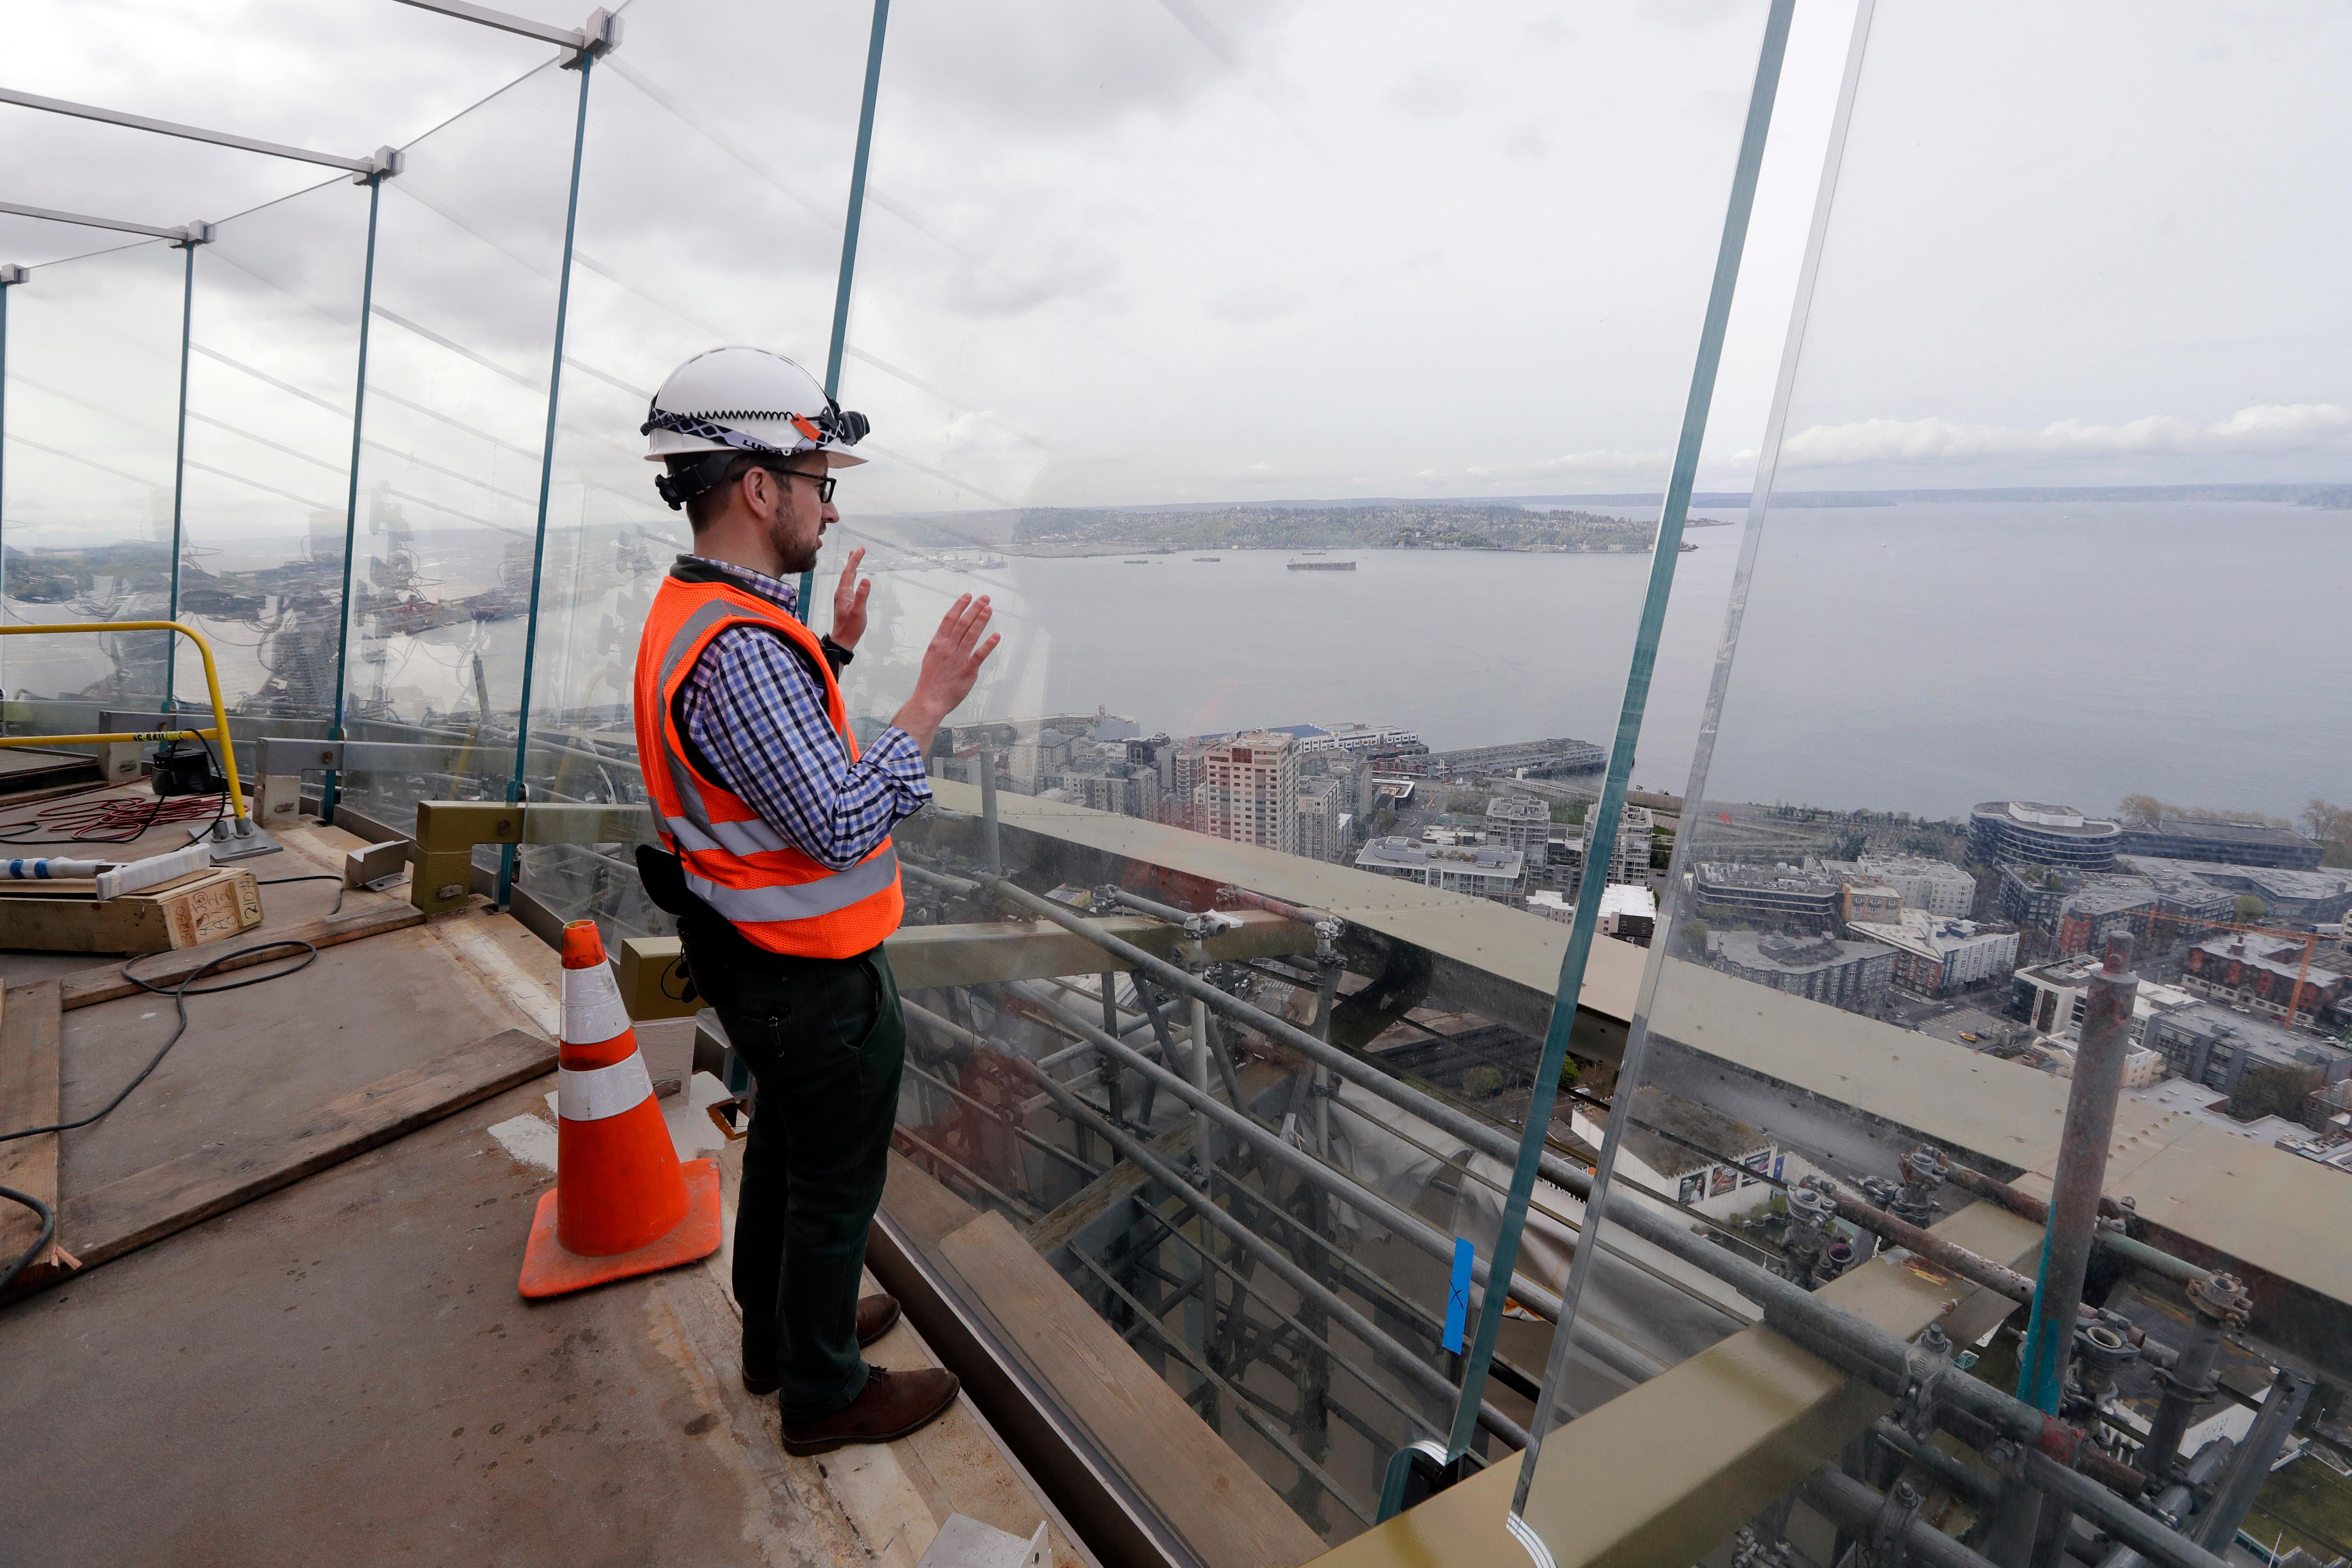 In this photo taken April 18, 2018, Space Needle facilities and construction superintendent Matt Waffle looks out over Elliott Bay through newly-installed glass panels atop the Space Needle in Seattle. The family-owned landmark is set to unveil the biggest renovation in its 56 year history next month, a $100 million investment in a single year of construction that transformed the structure's top viewing level some 500-feet above ground. The preservation and renovation project included the installation of floor-to-ceiling glass on the viewing deck, updated the structure's physical systems and adds a glass floor to the rotating restaurant. (AP Photo/Elaine Thompson)